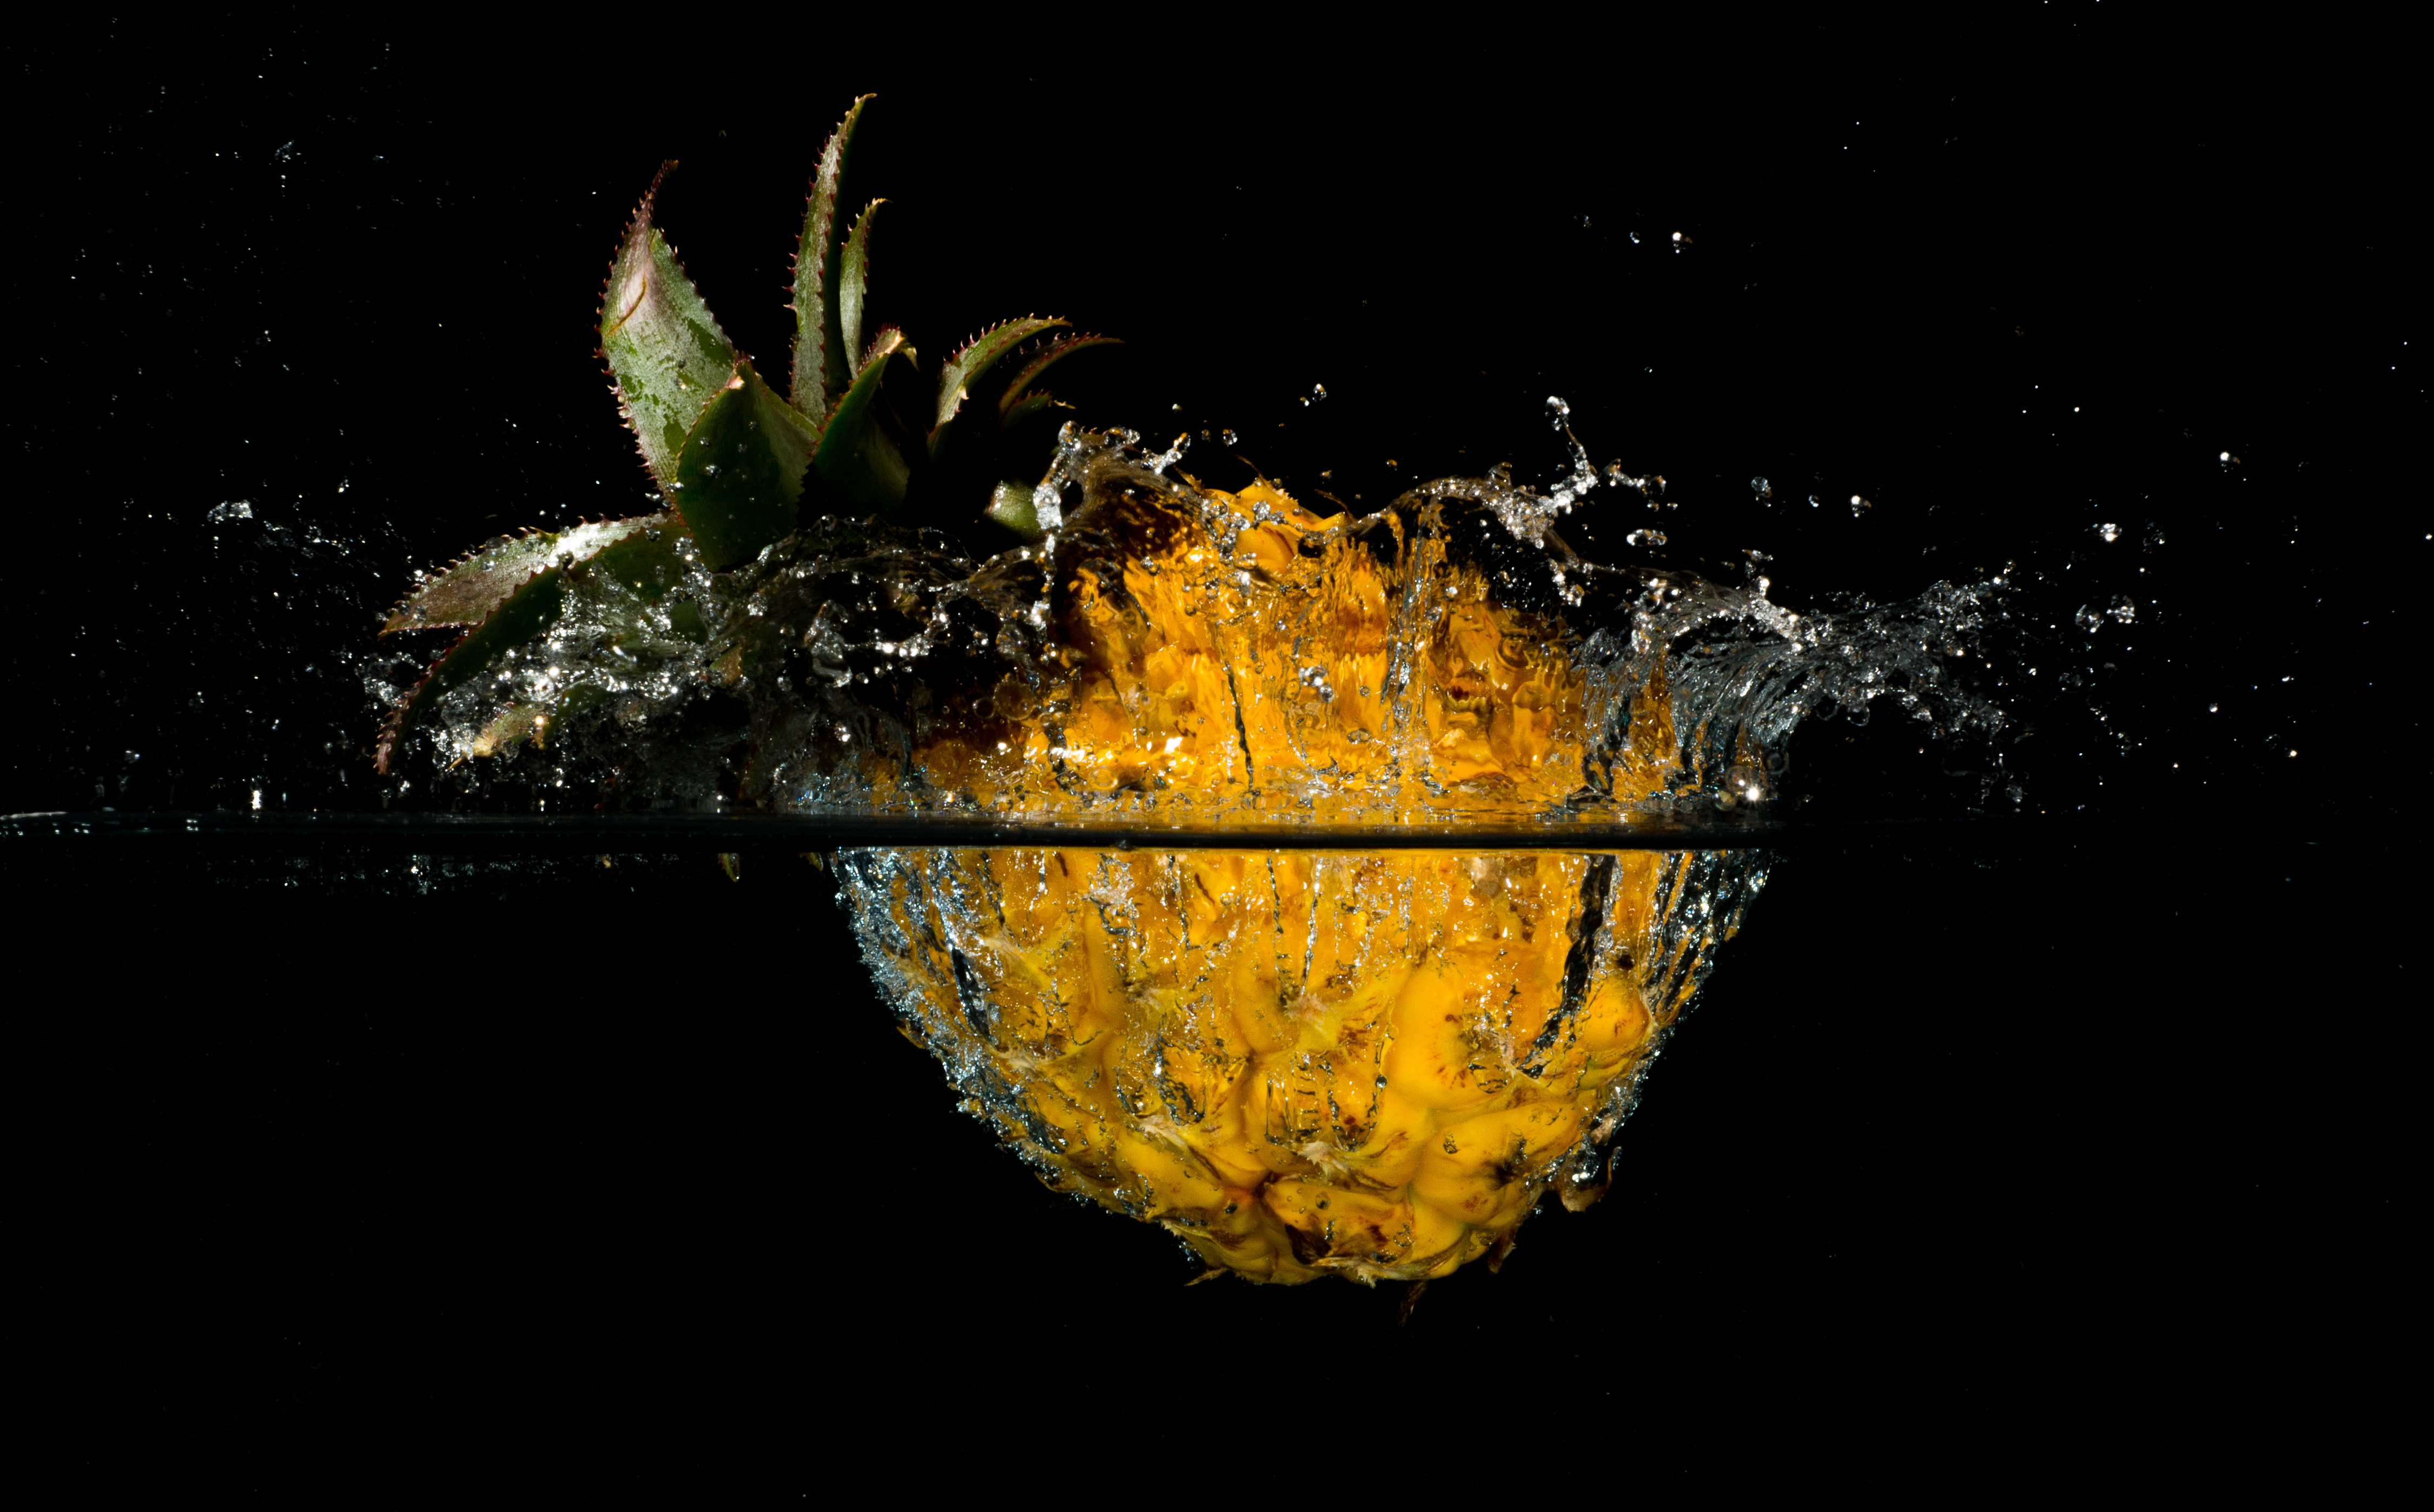 Water Drop Wallpaper For Iphone Pineapple 4k Ultra Hd Wallpaper And Background Image